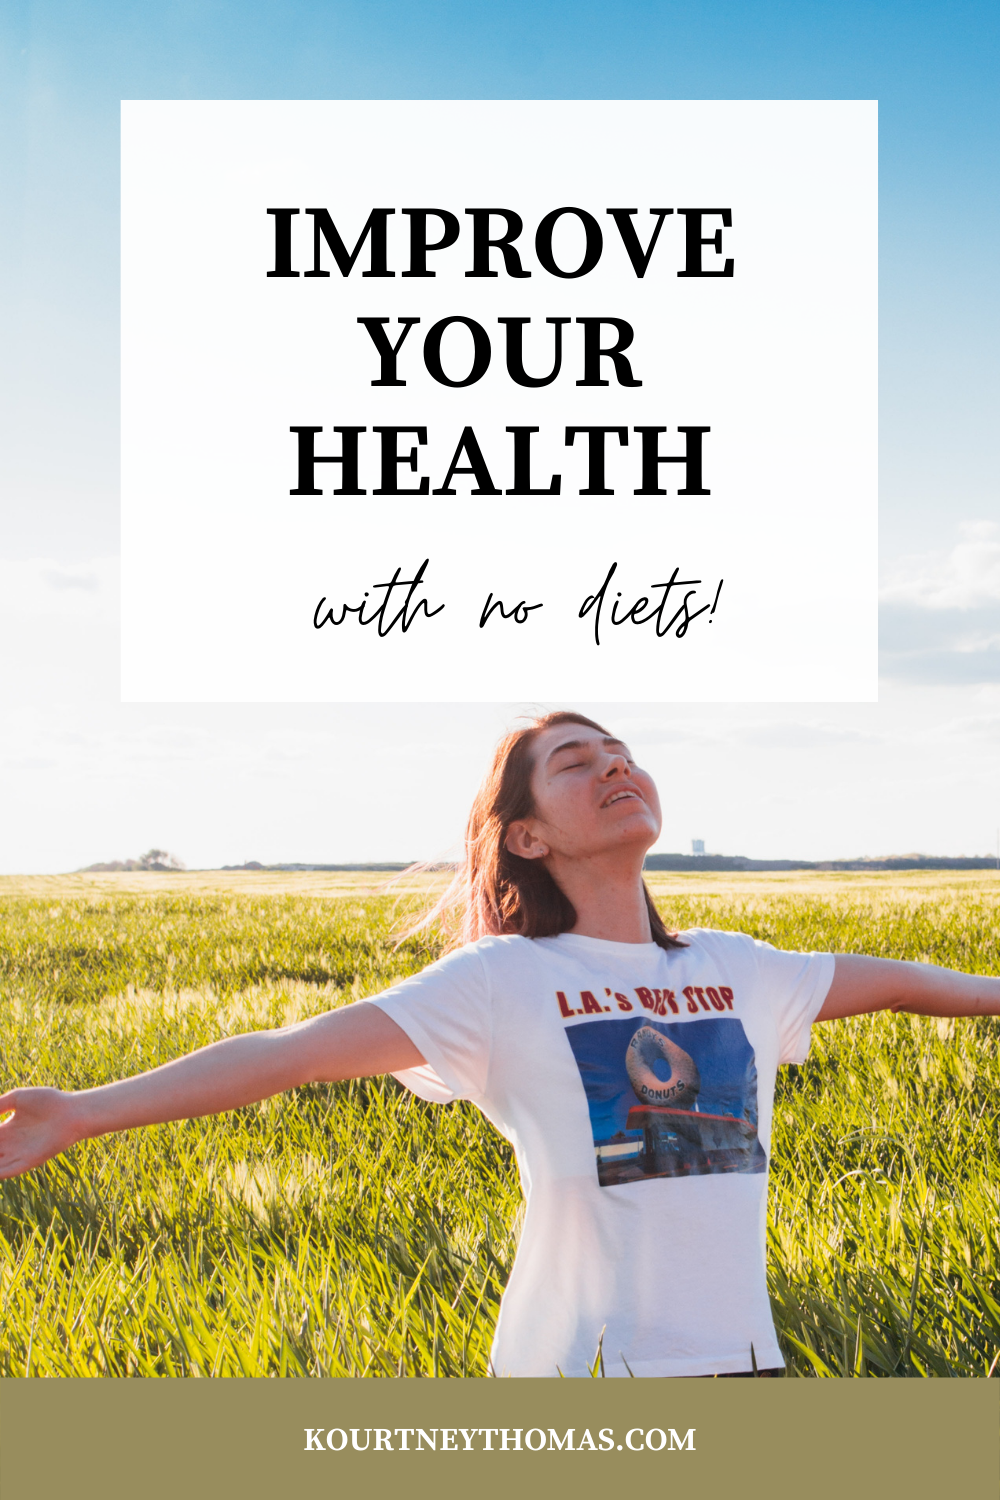 improve your health without diets | kourtney thomas fitness life coach